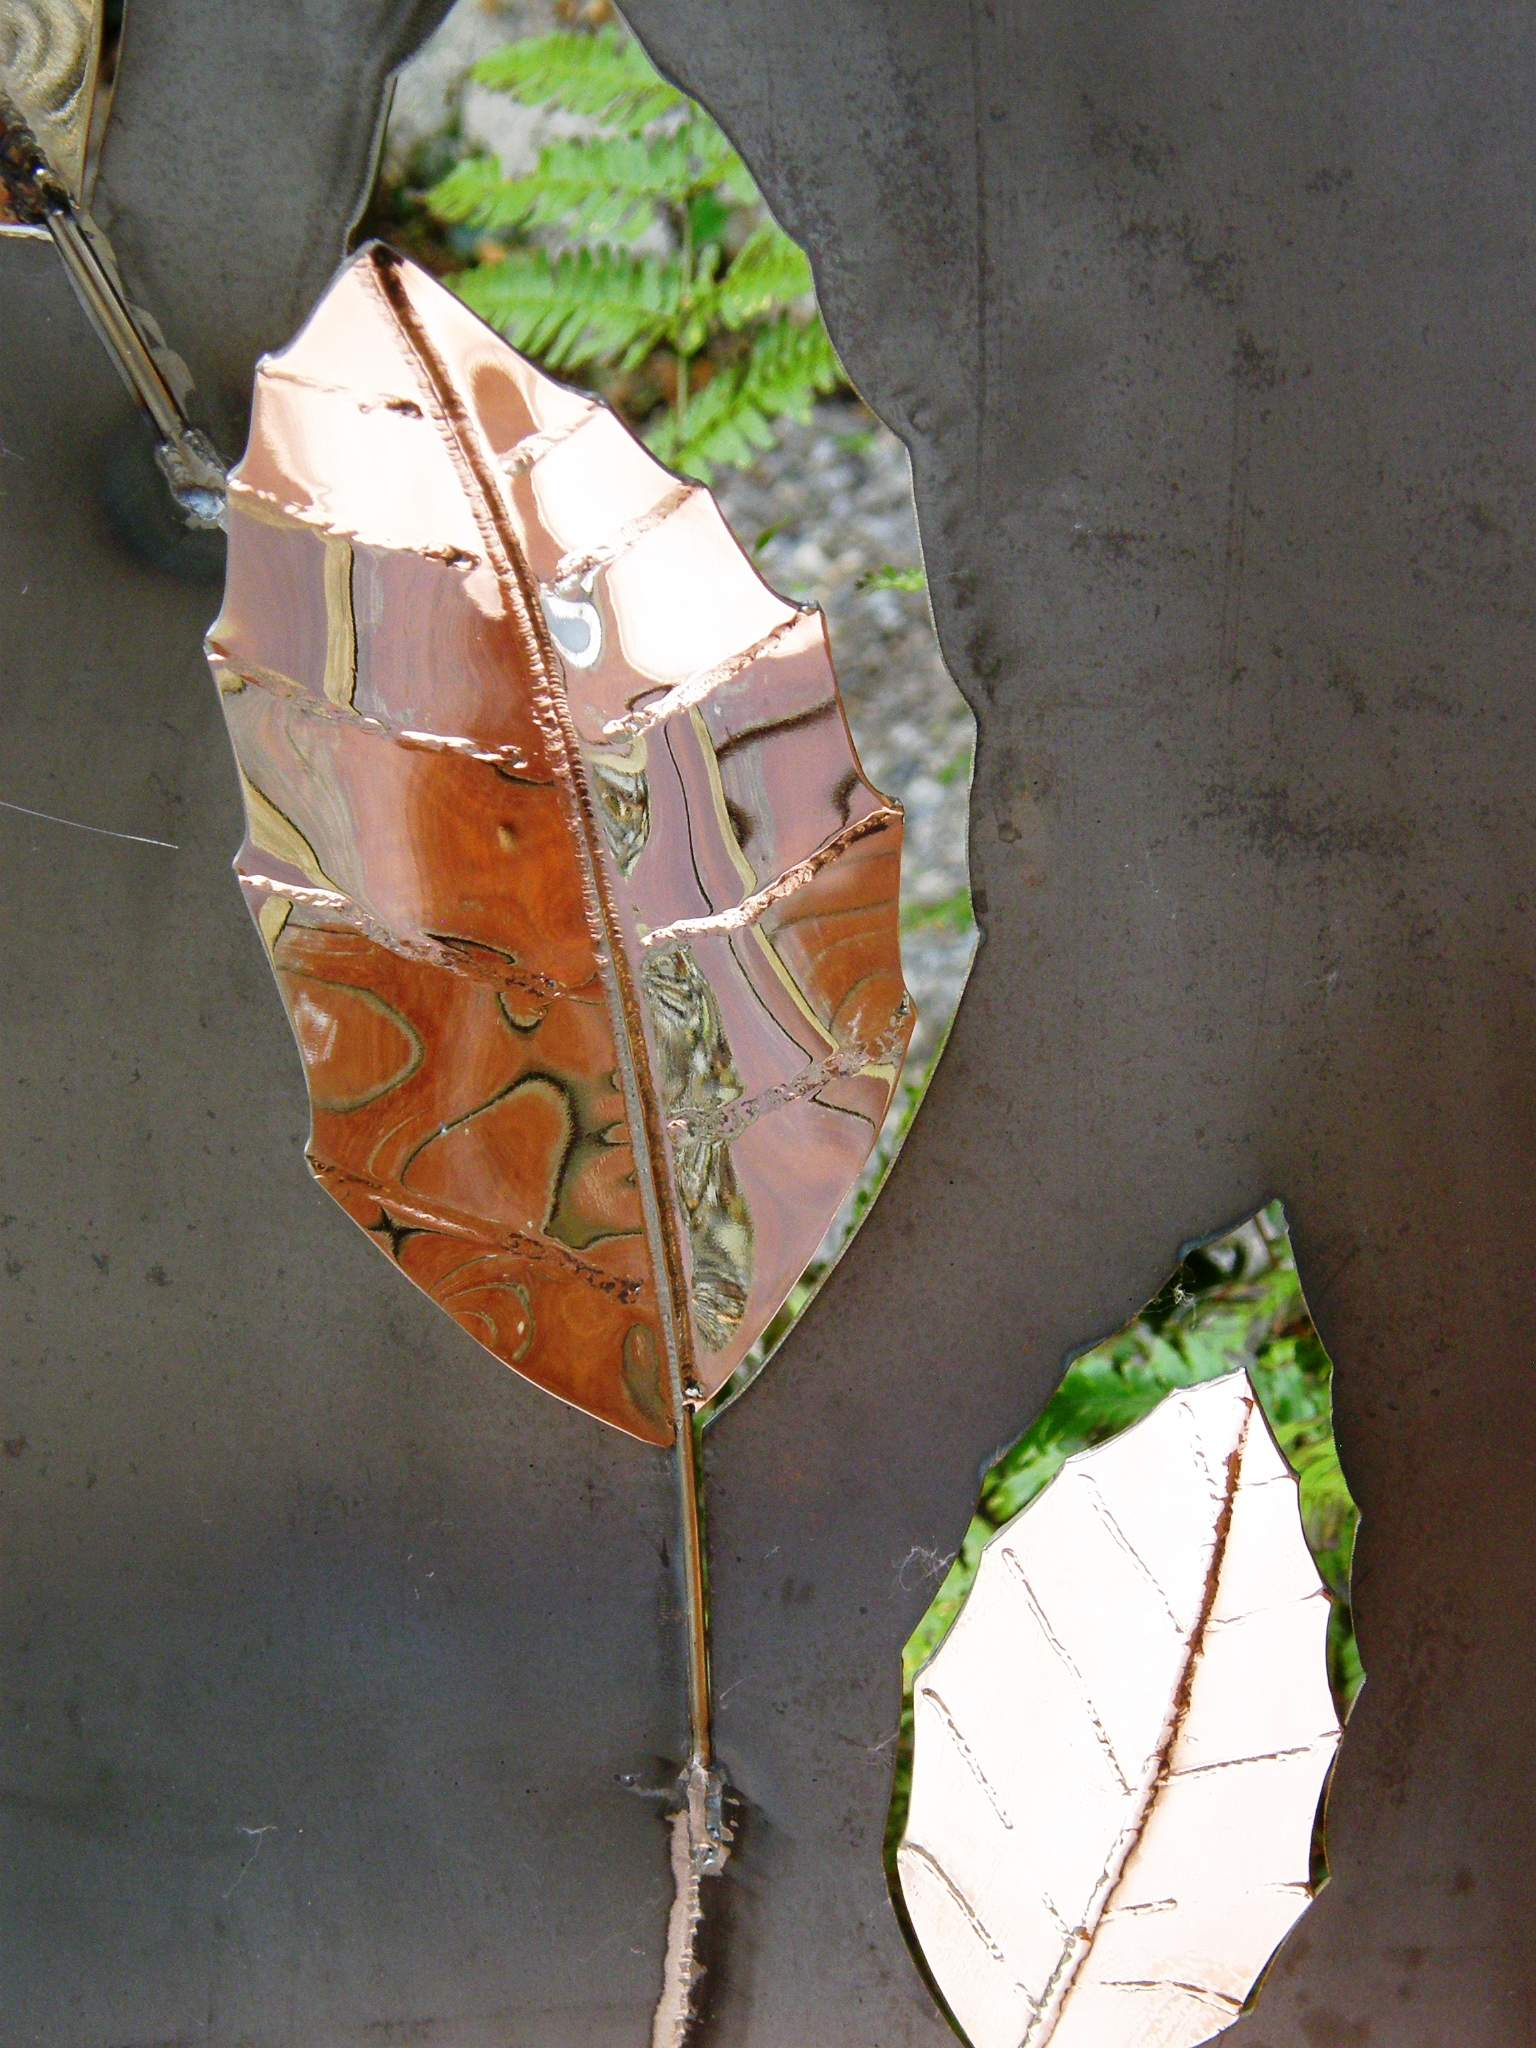 Copper reflections in Stainless Steel Leaves